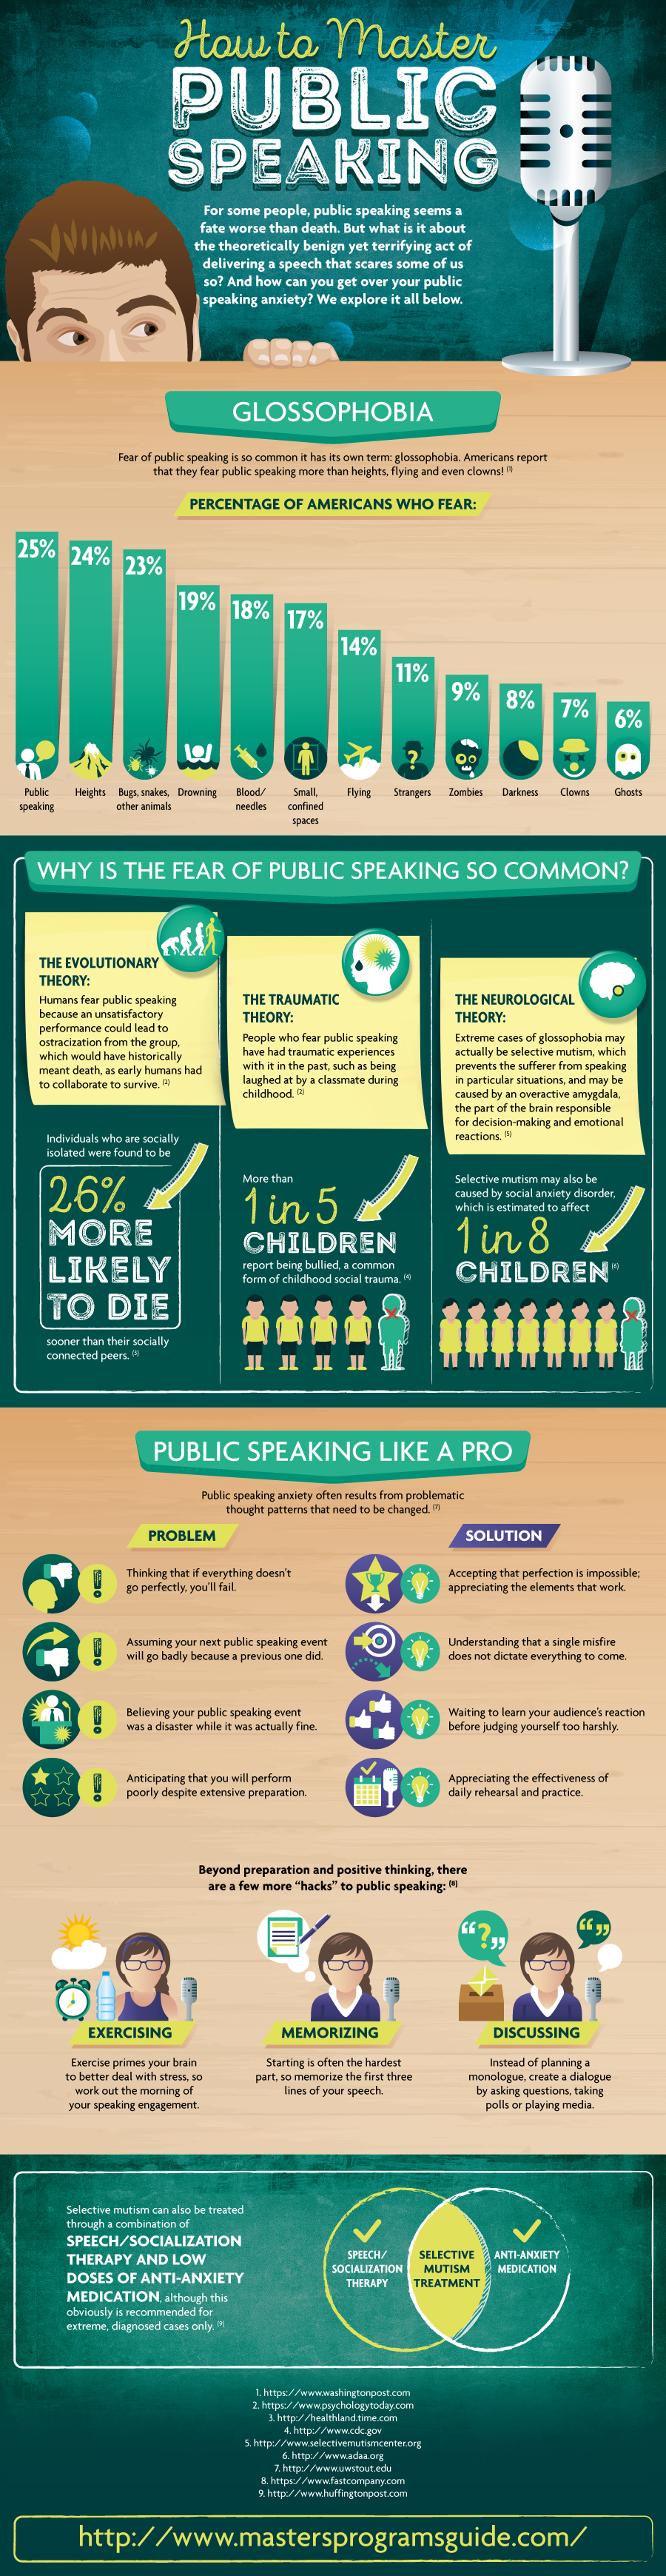 Glossophobia and Fear of Public Speaking